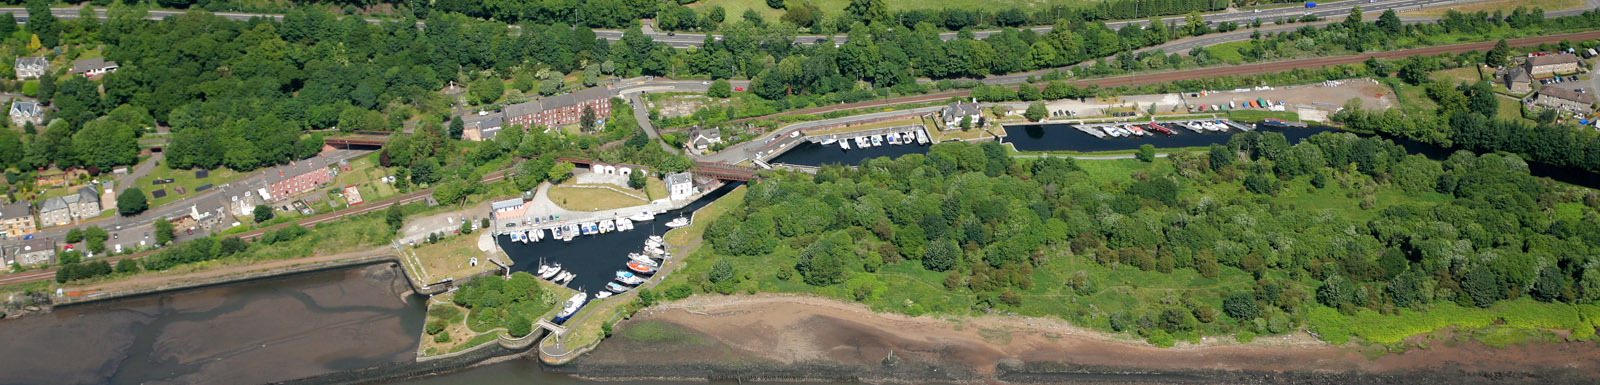 Bowling Harbour and the Forth & Clyde canal from the air